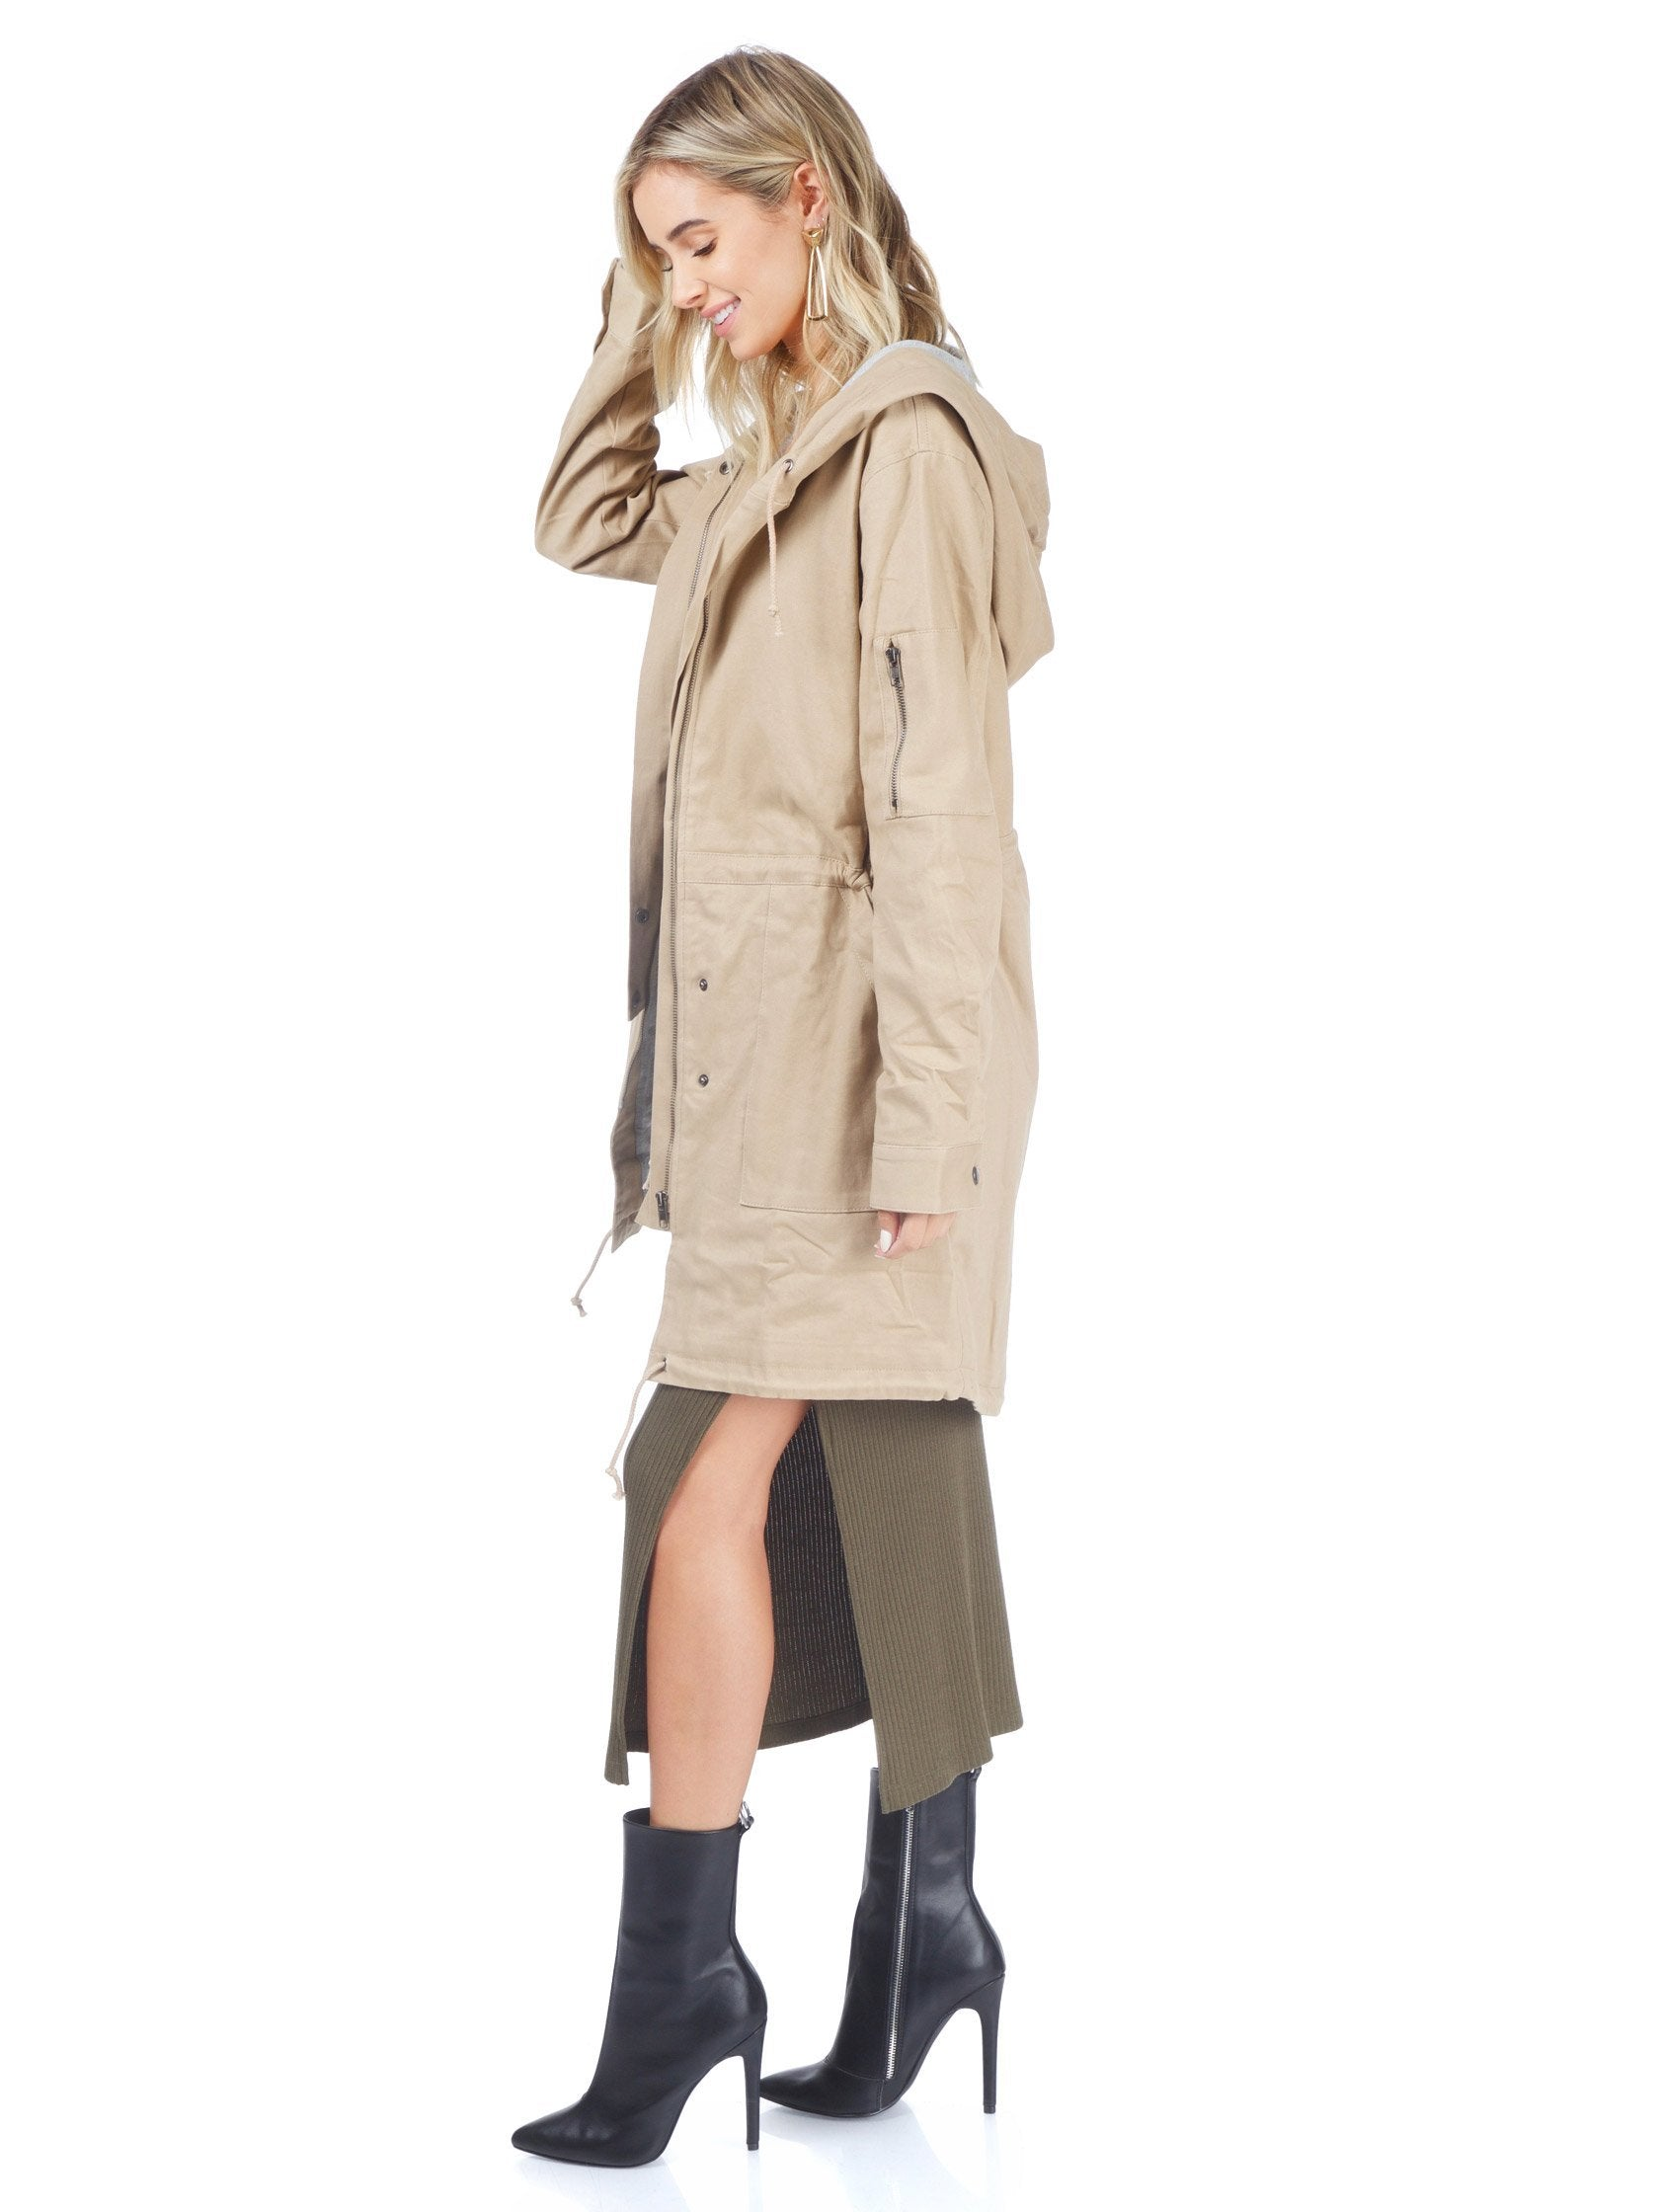 Girl outfit in a jacket rental from Lush called Tan Cargo Jacket